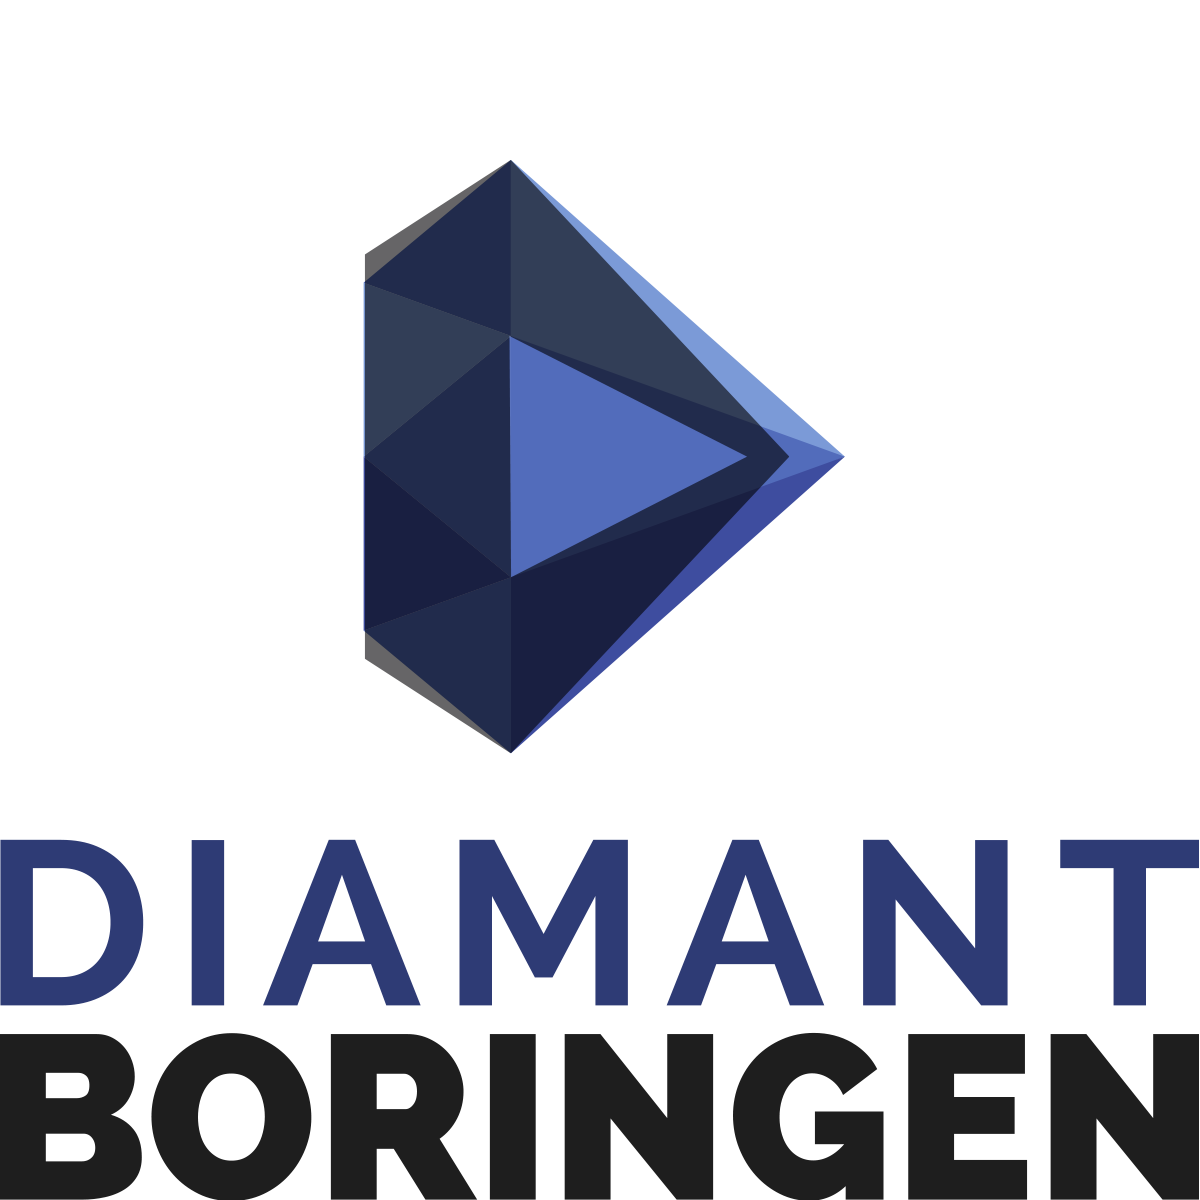 Diamantboringen cover